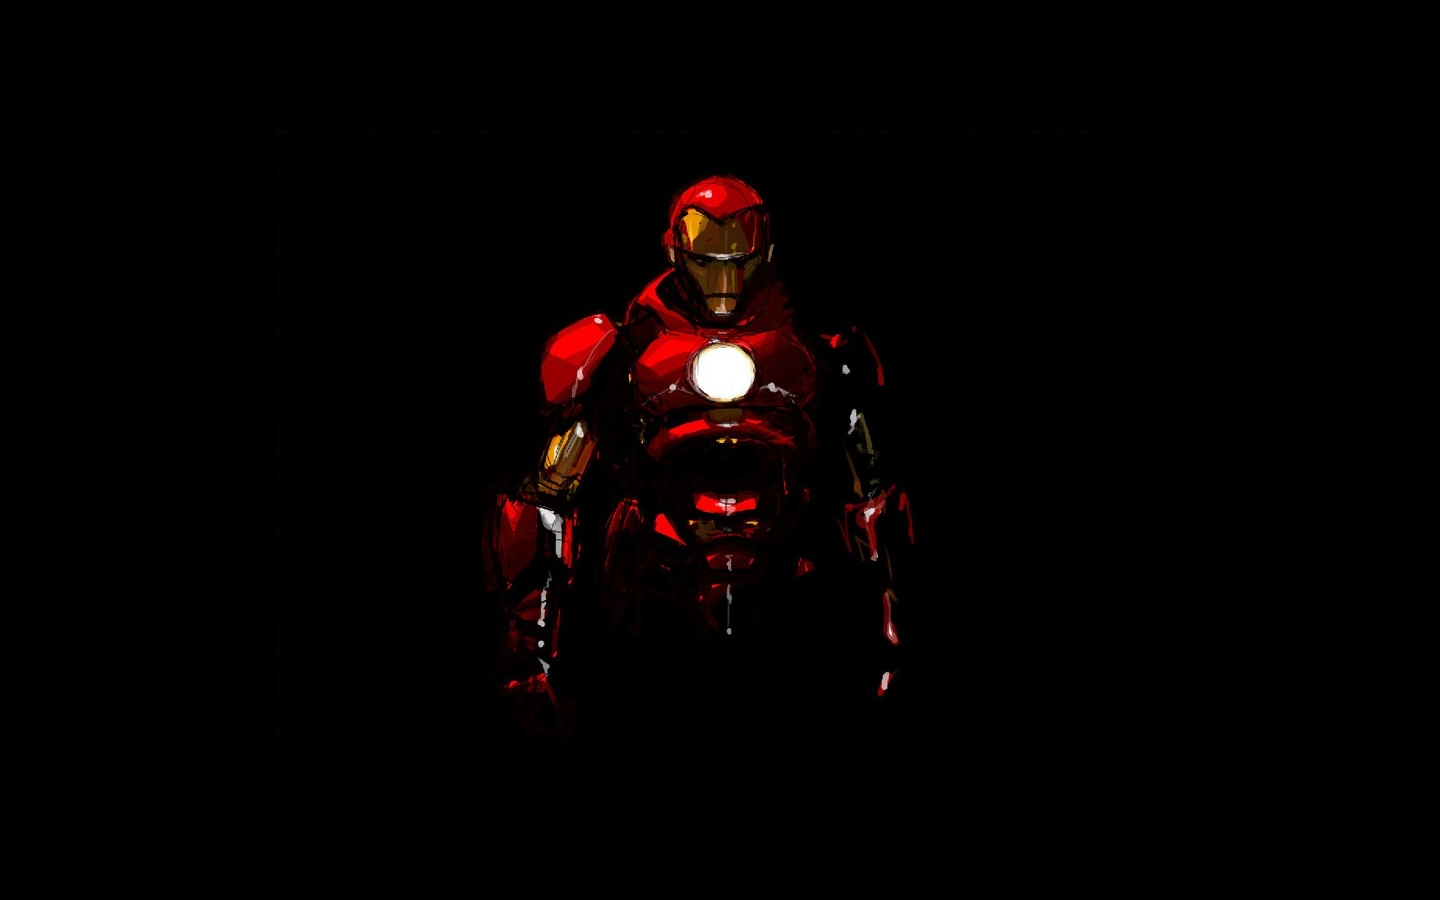 Hd Wallpapers Iron Man: EVERY THING HD WALLPAPERS: Iron Man HD Wallpapers 2013